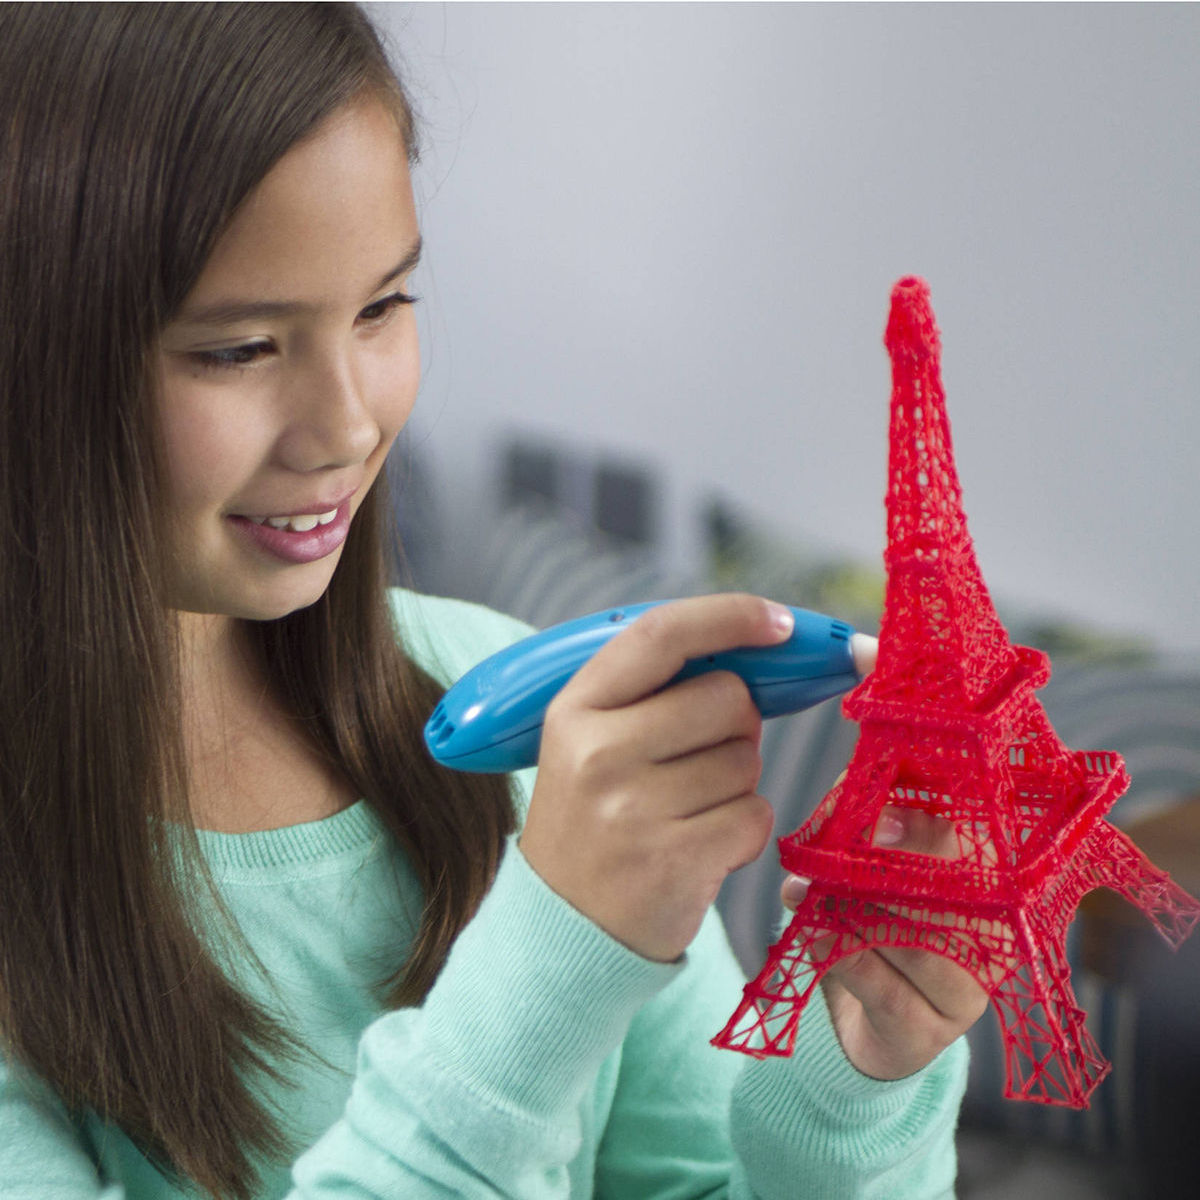 Детская 3D-ручка 3Doodler Start - МЕГАКРЕАТИВ 3DS-MEGA-E-R купить Купить,3Doodler,Start,3DS-MEGA-E-R,Детская,3D-ручка,3Doodler,Start,МЕГАКРЕАТИВ,цена,Киев,Украина